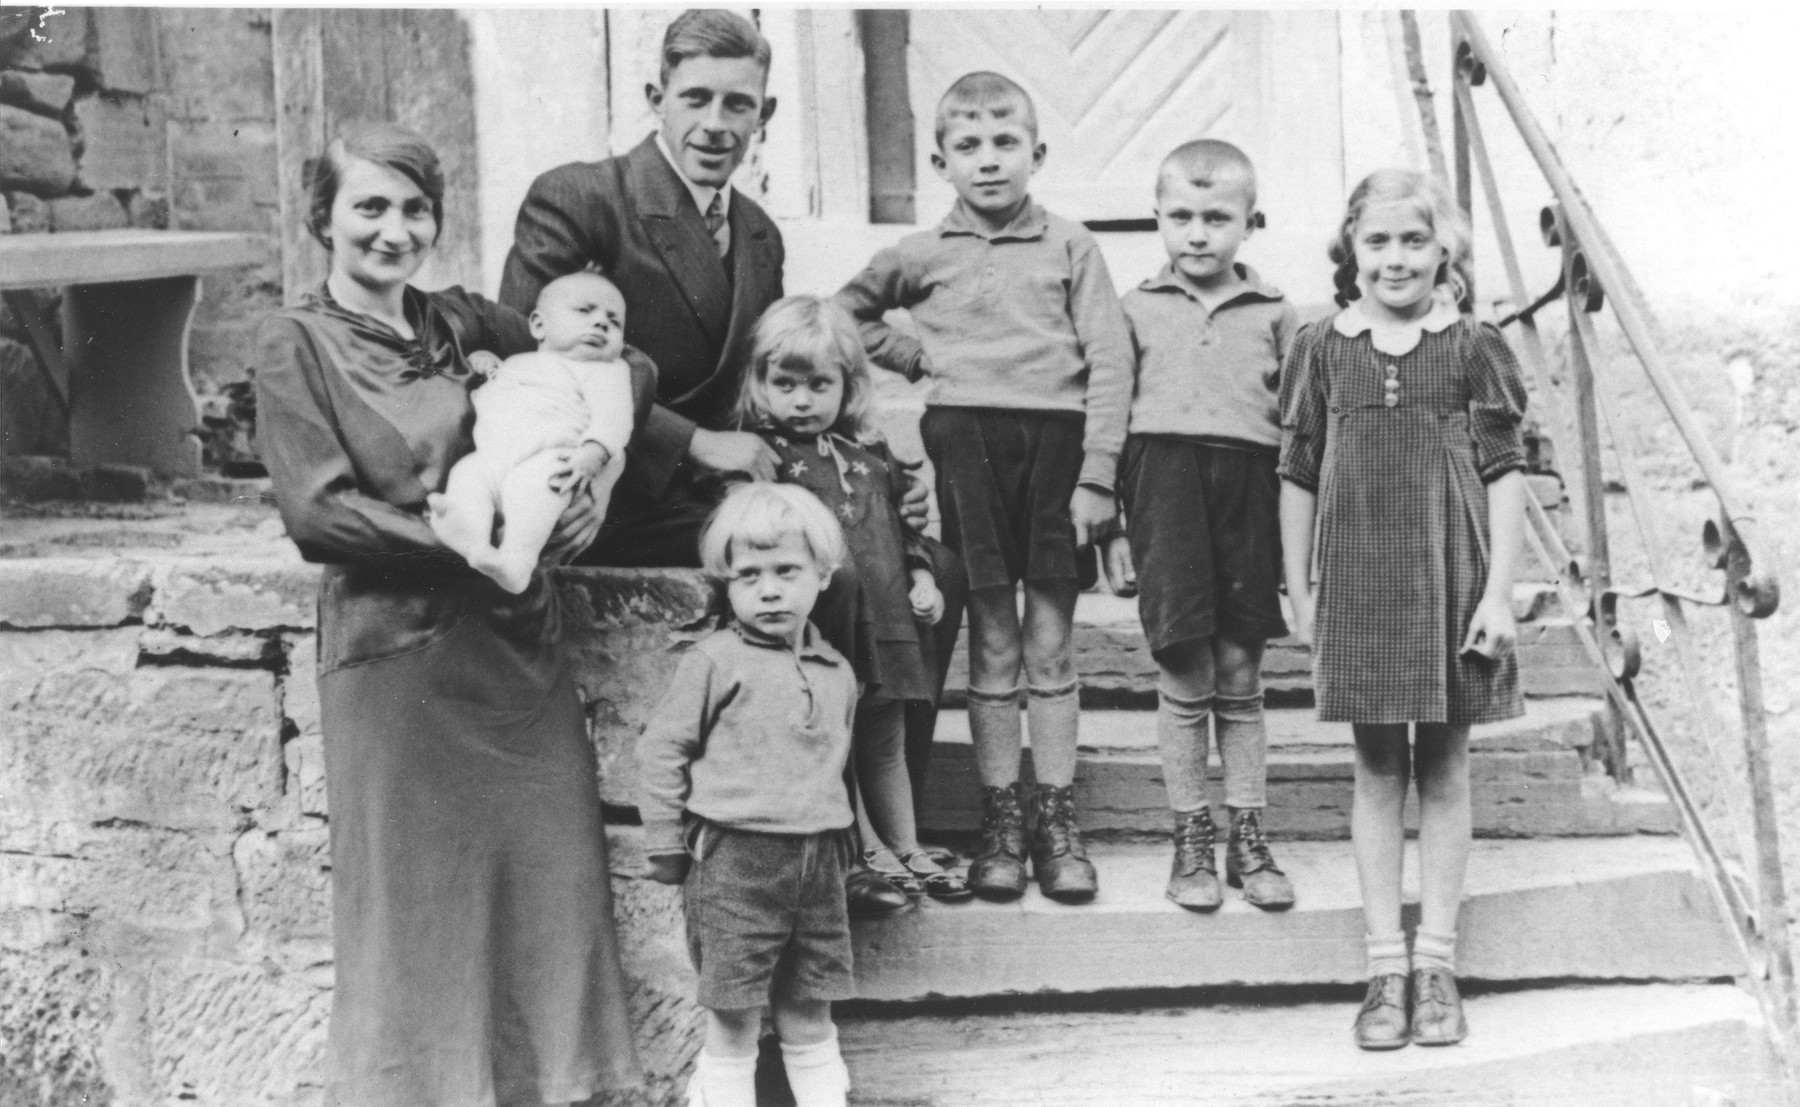 Portrait of the Wertheim family.  Pictured are Julius and Hanna (Kaiser) Wertheim (the uncle and aunt of Sonja Kaiser) with their six children, Joseph, Julius, Ruth, Solly, Heinz, Rolf and Kerry.  The oldest daughter, Kerry, was sent on a Kindertransport to England and survived.  The rest of the family perished.